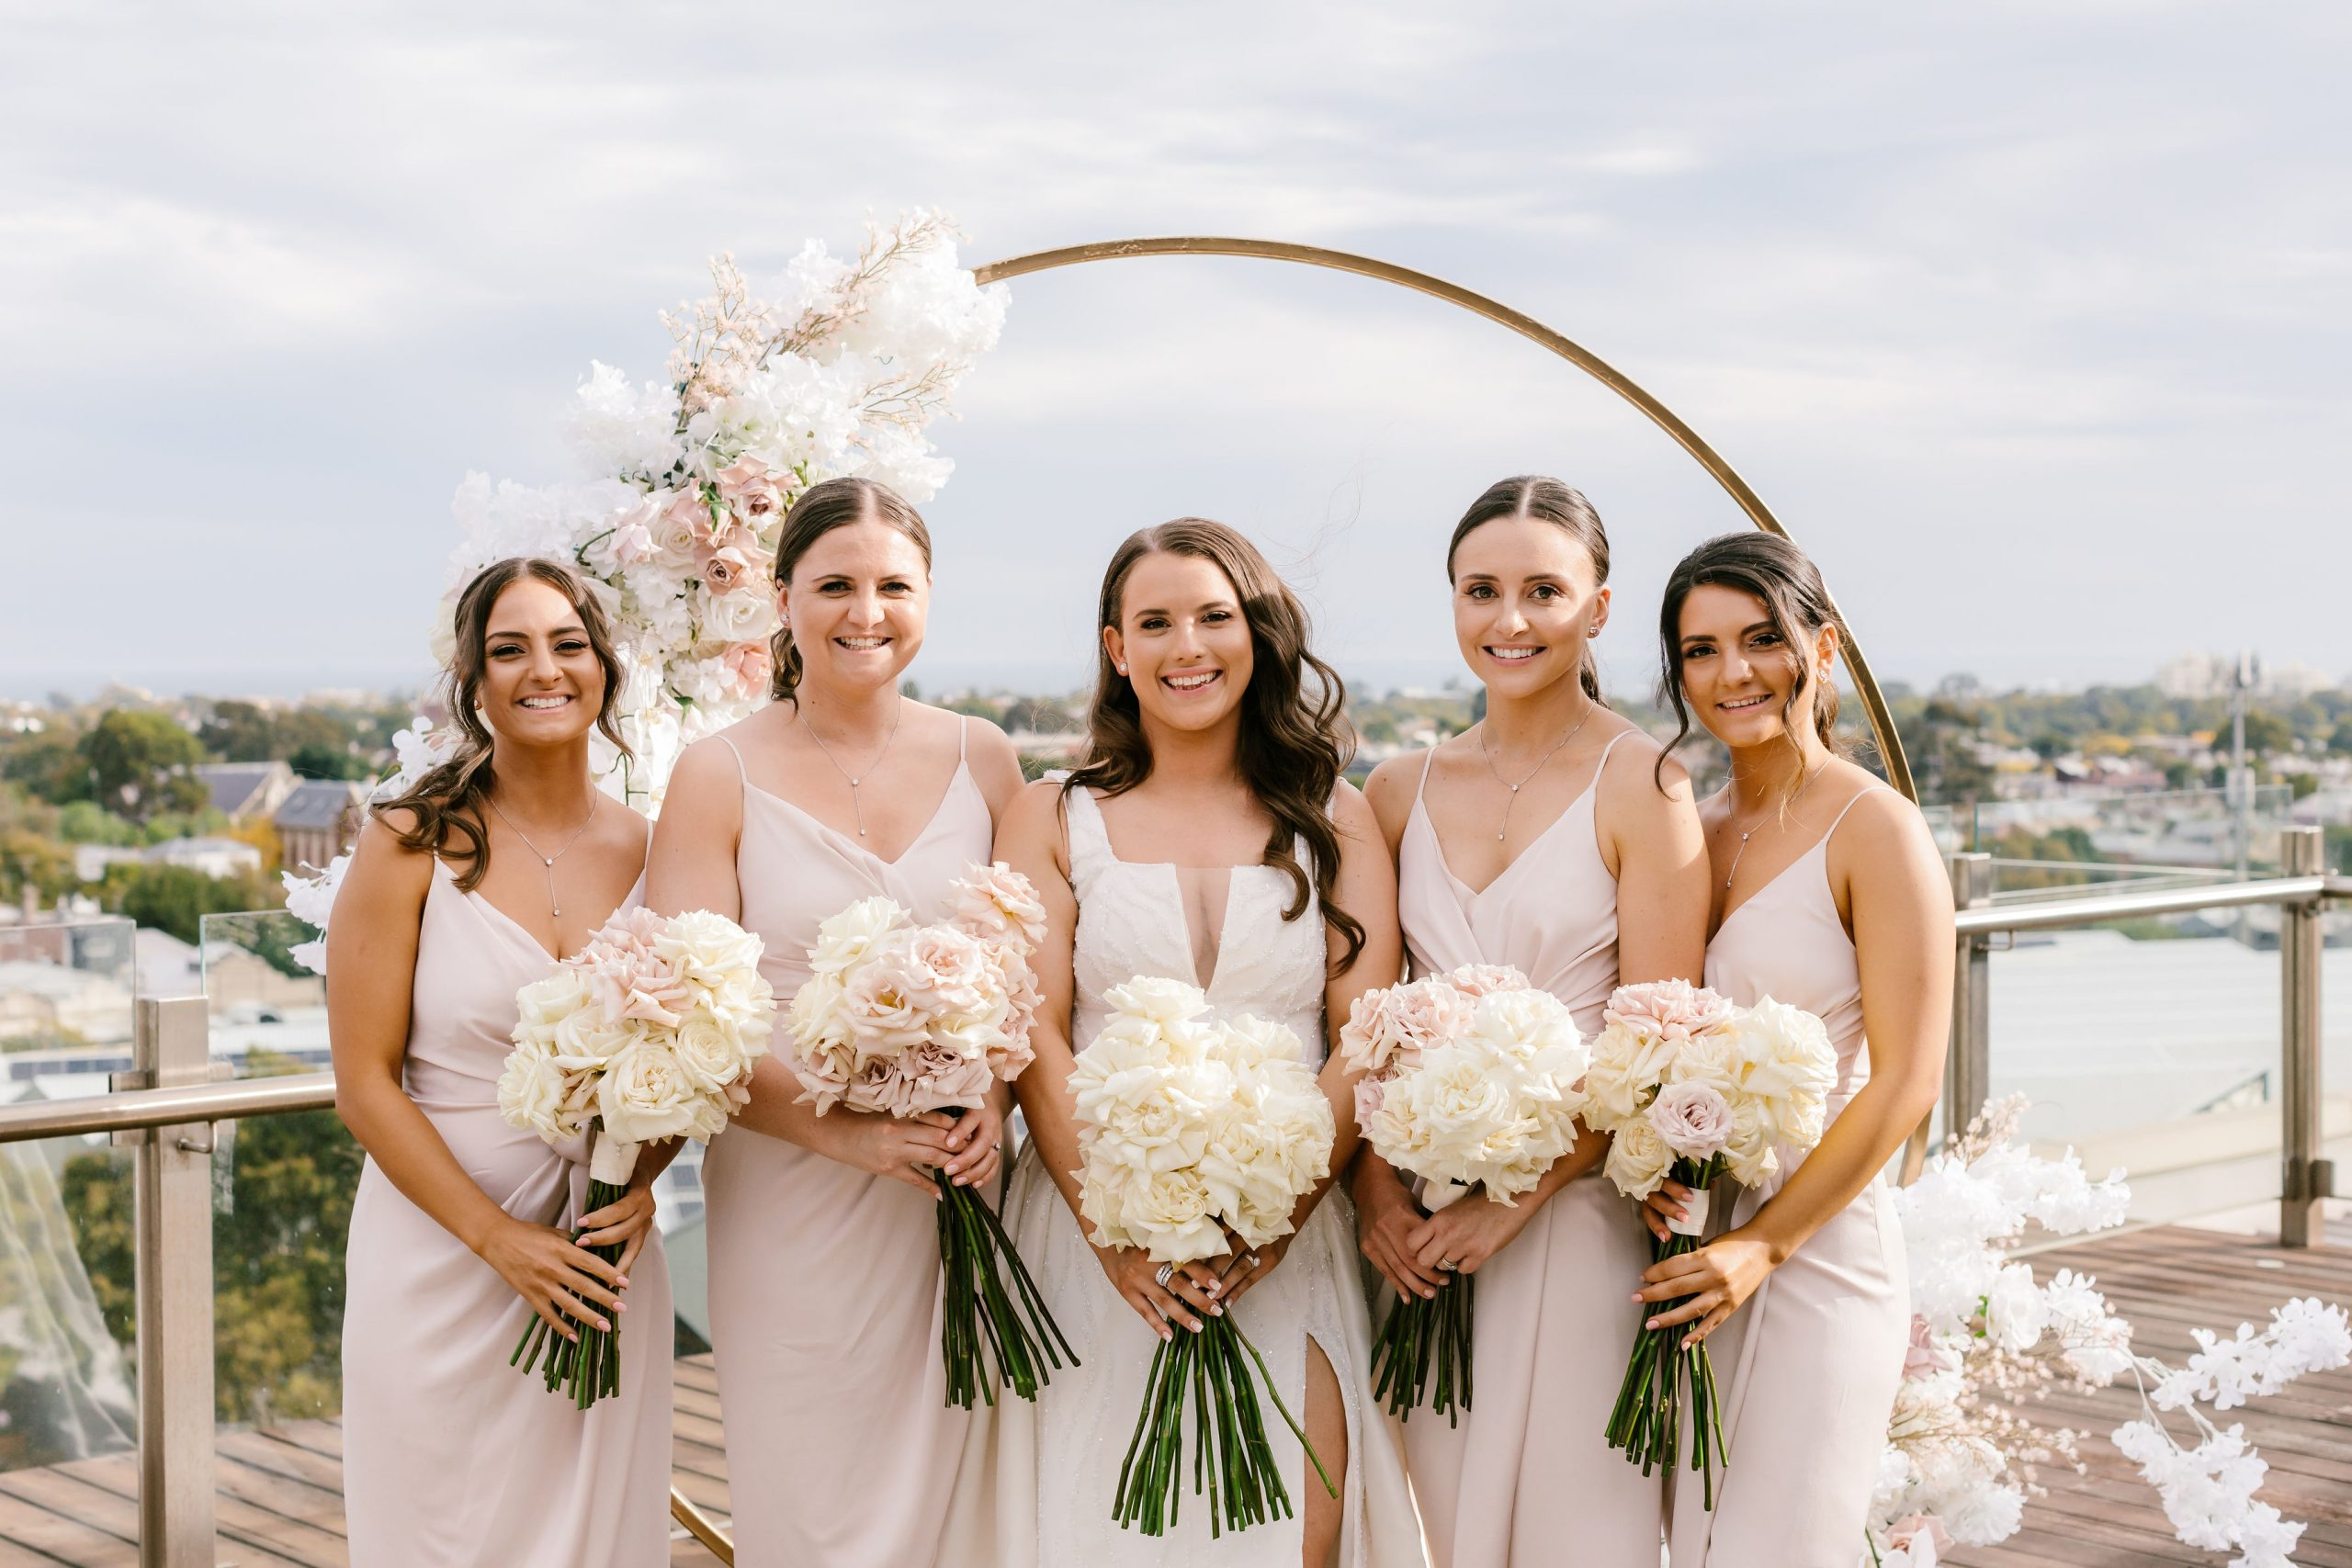 Nicole and her bridesmaids at the Luminarie Rooftop